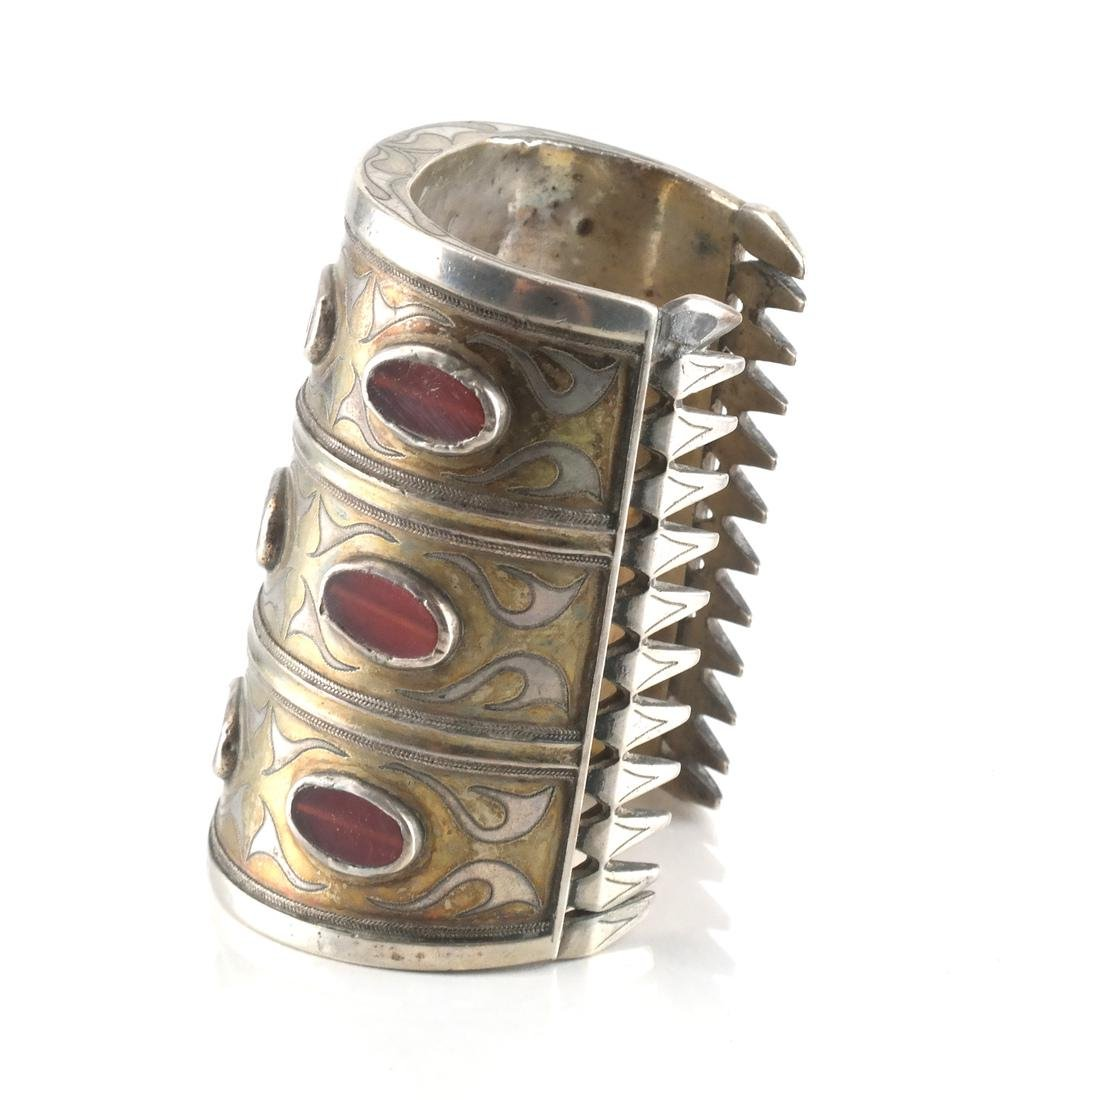 Antique Afghan/Central Asian Silver Jeweled Cuff